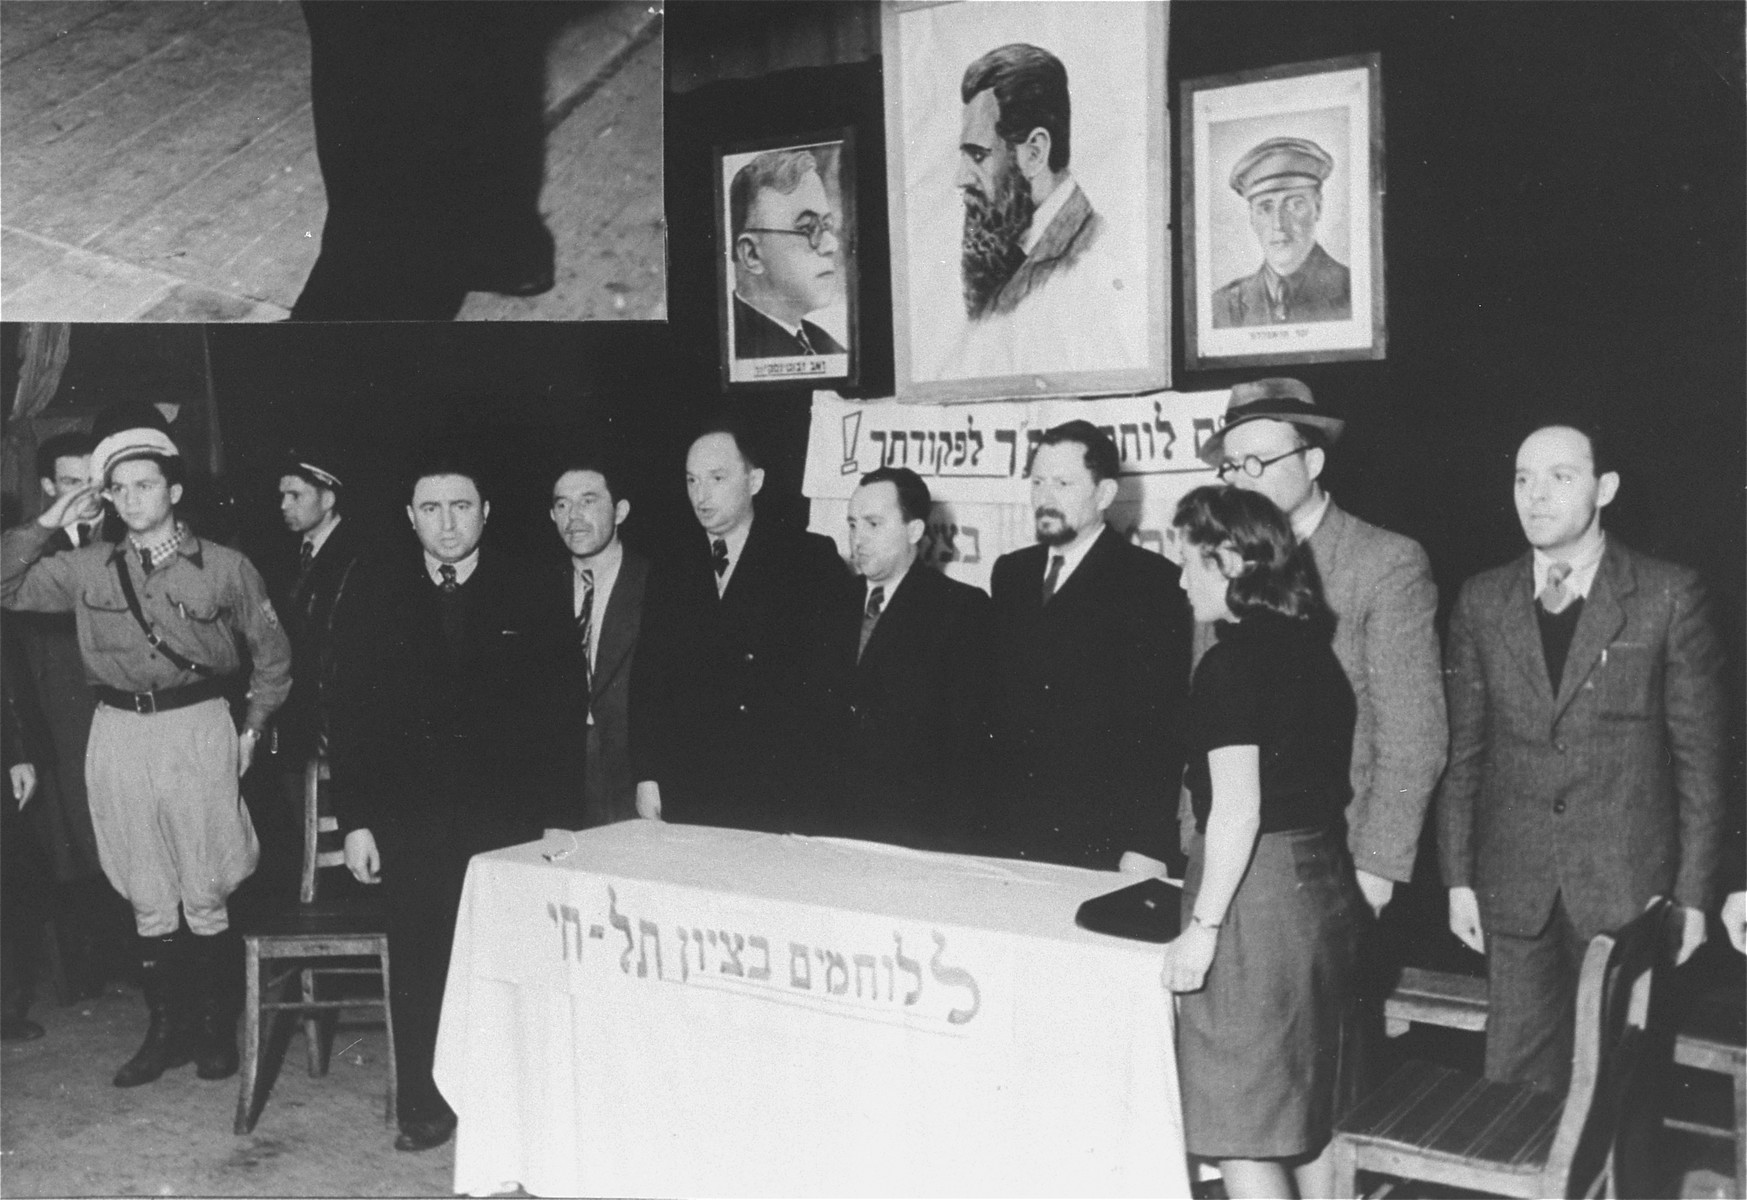 Rabbi Bernstein being introduced to the audience at a meeting in Zeilsheim displaced persons' camp.